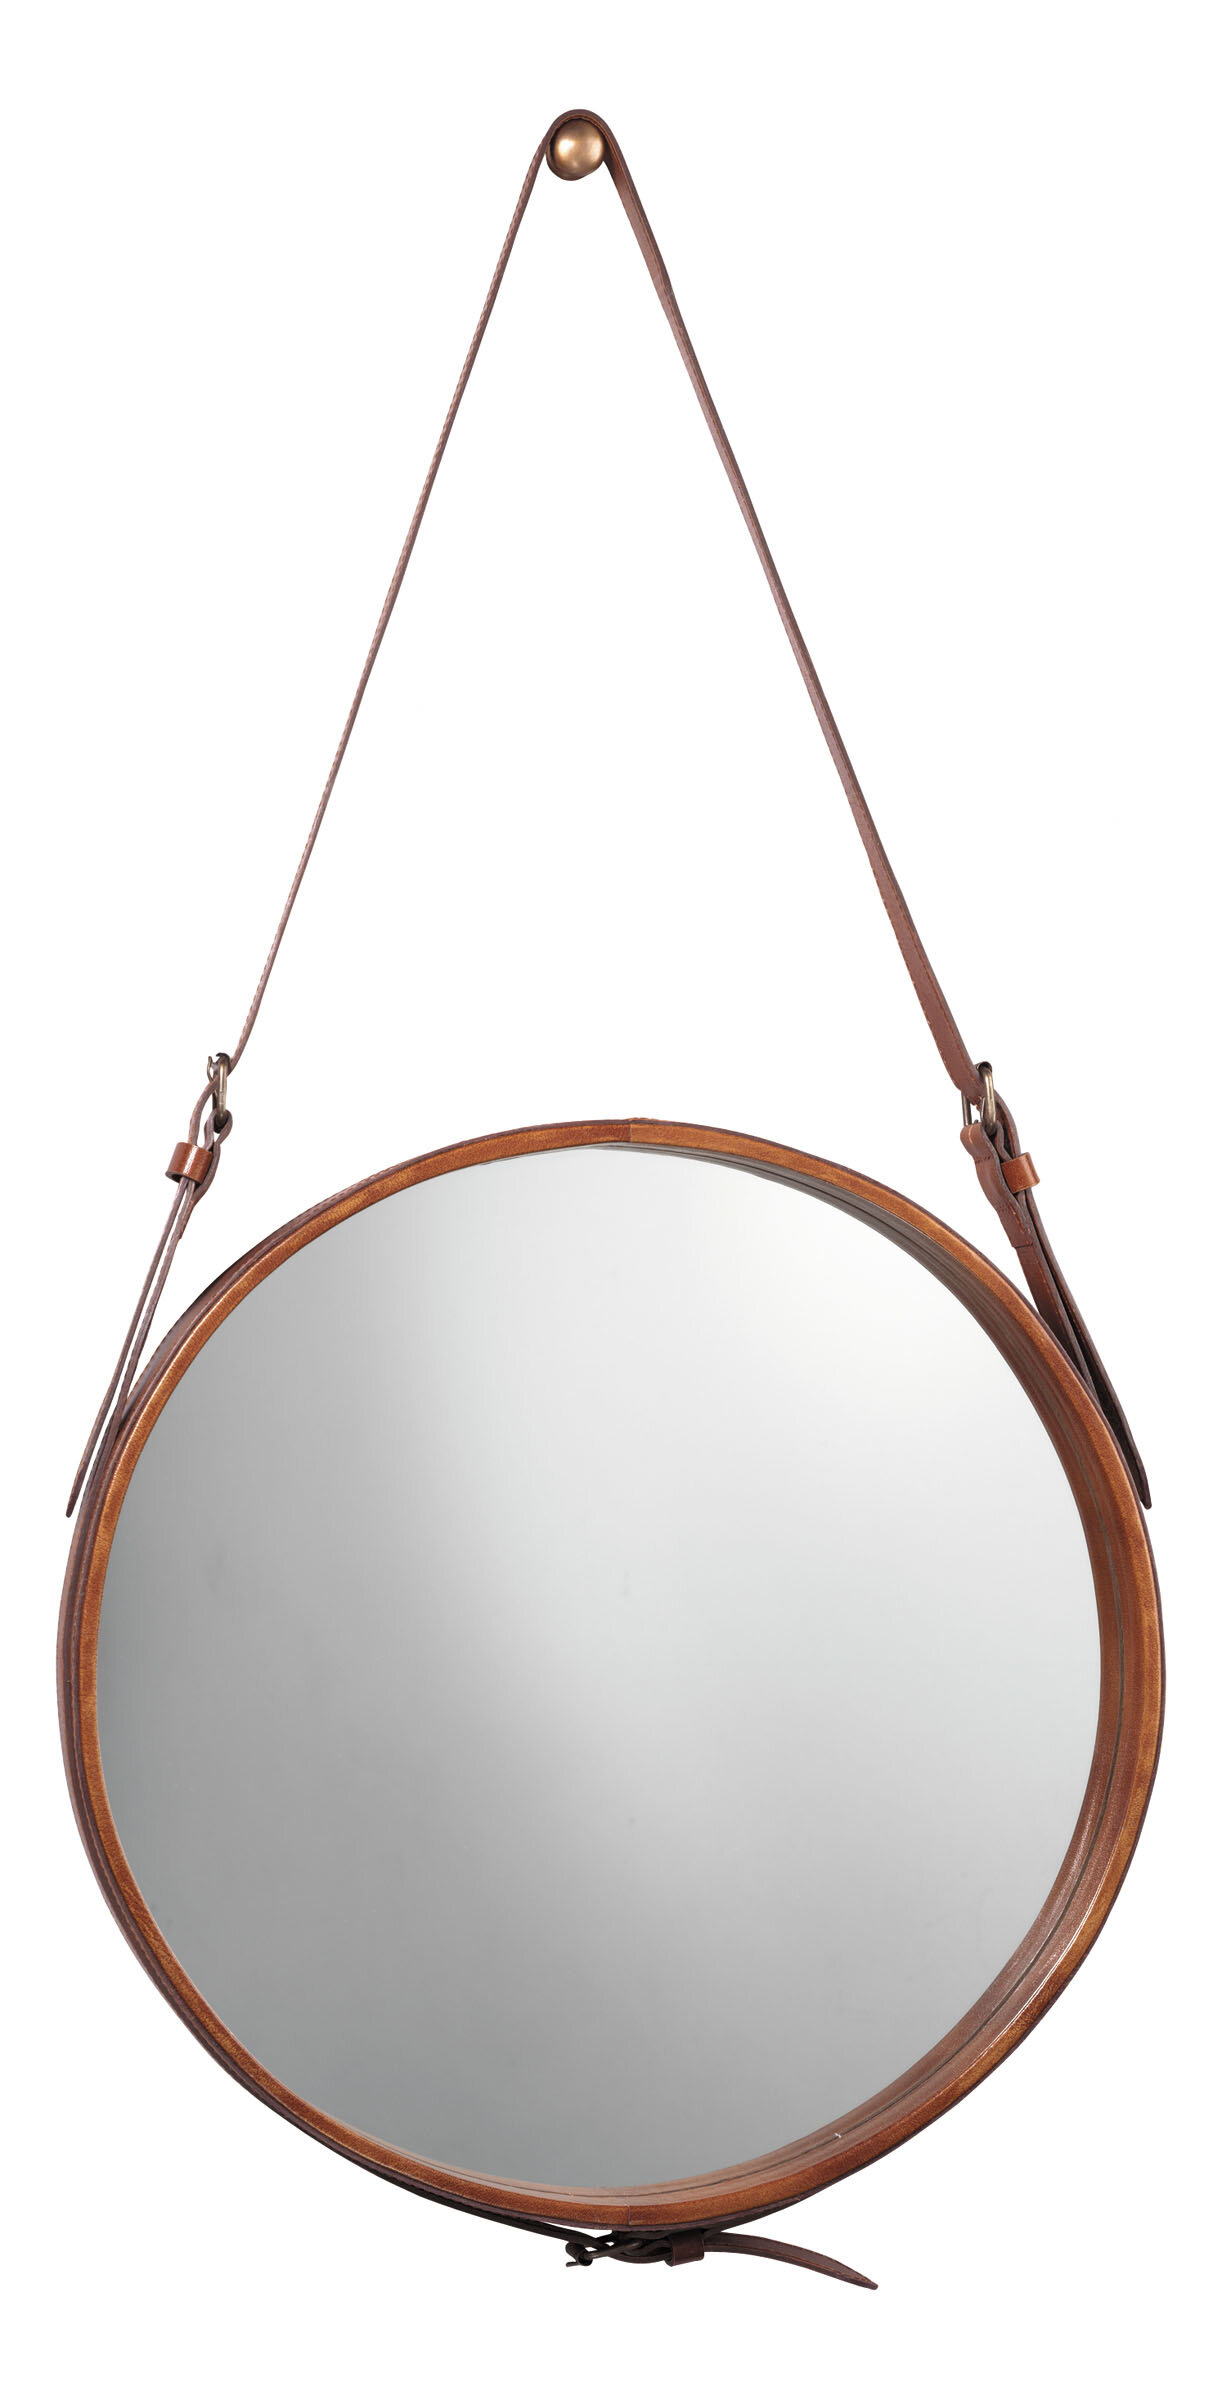 b645895c25d4 Langley Street Bombay Distressed Vertical Round Wall Mirror   Reviews